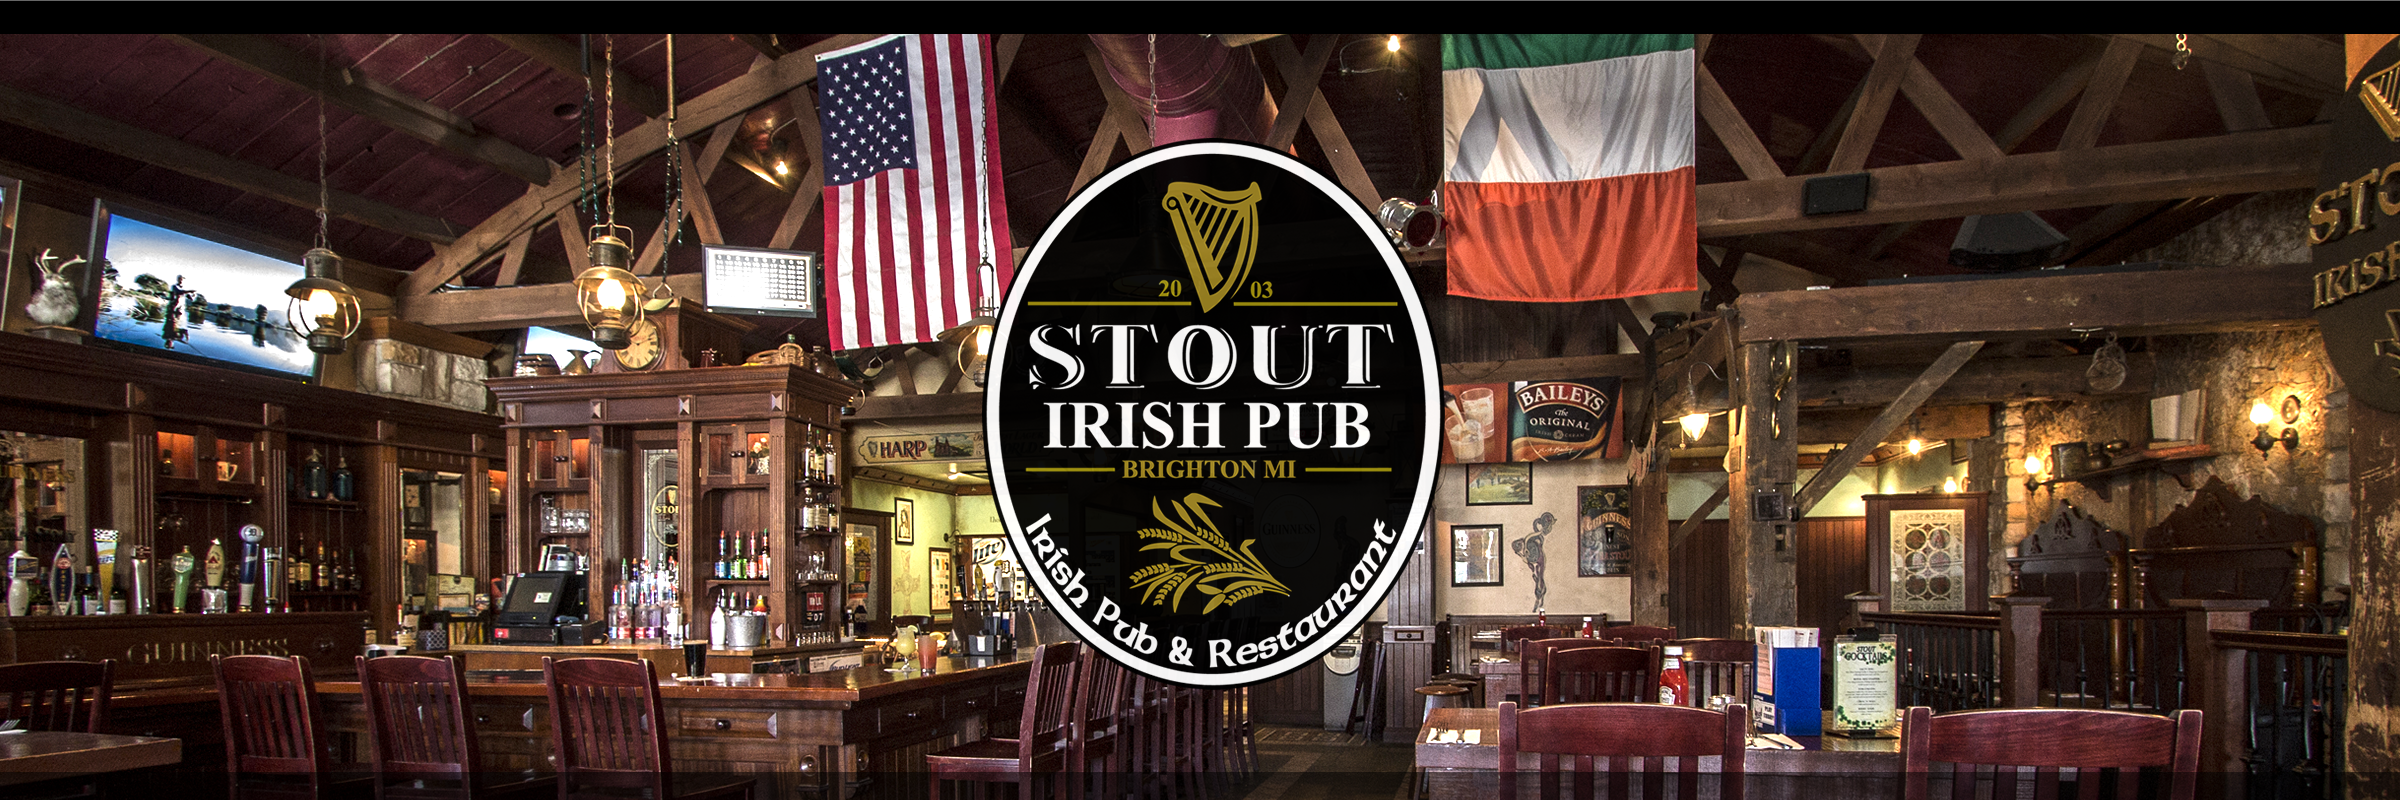 Stout Irish Pub Brighton Livingston County Michigan